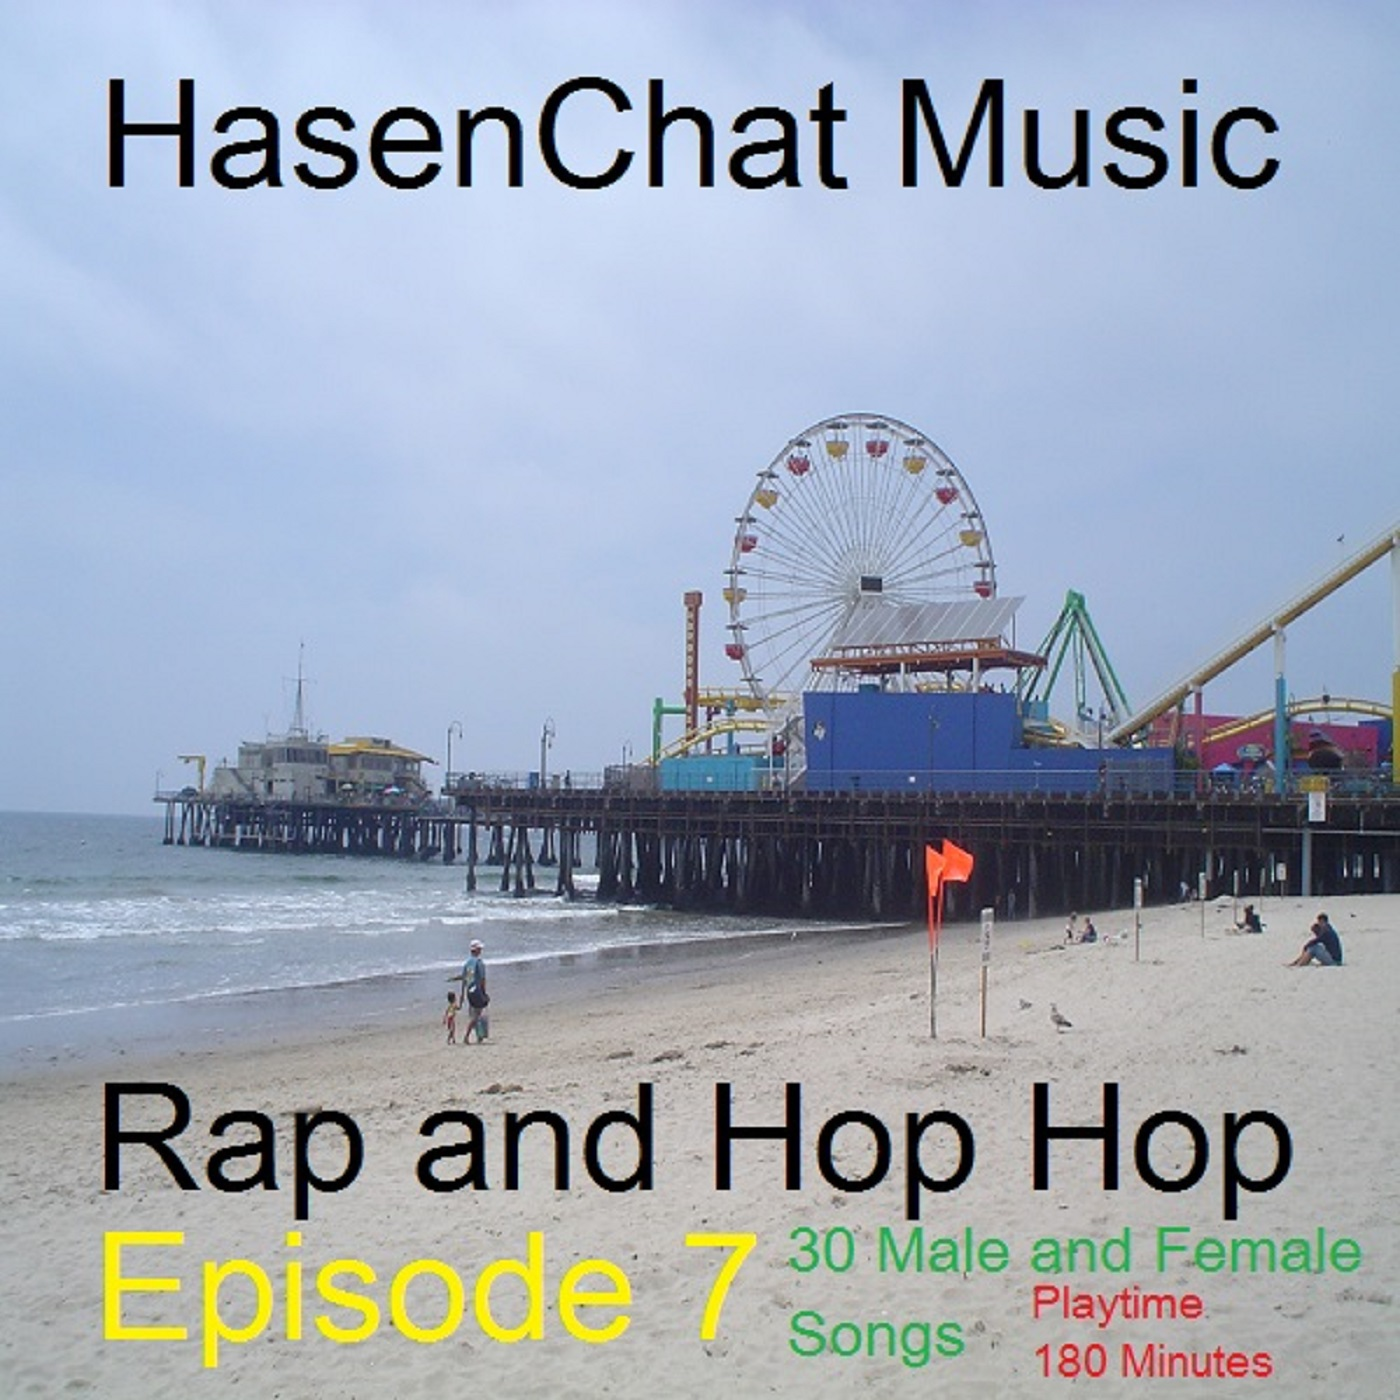 HasenChat Music - Rap and Hip Hop - Episode 7